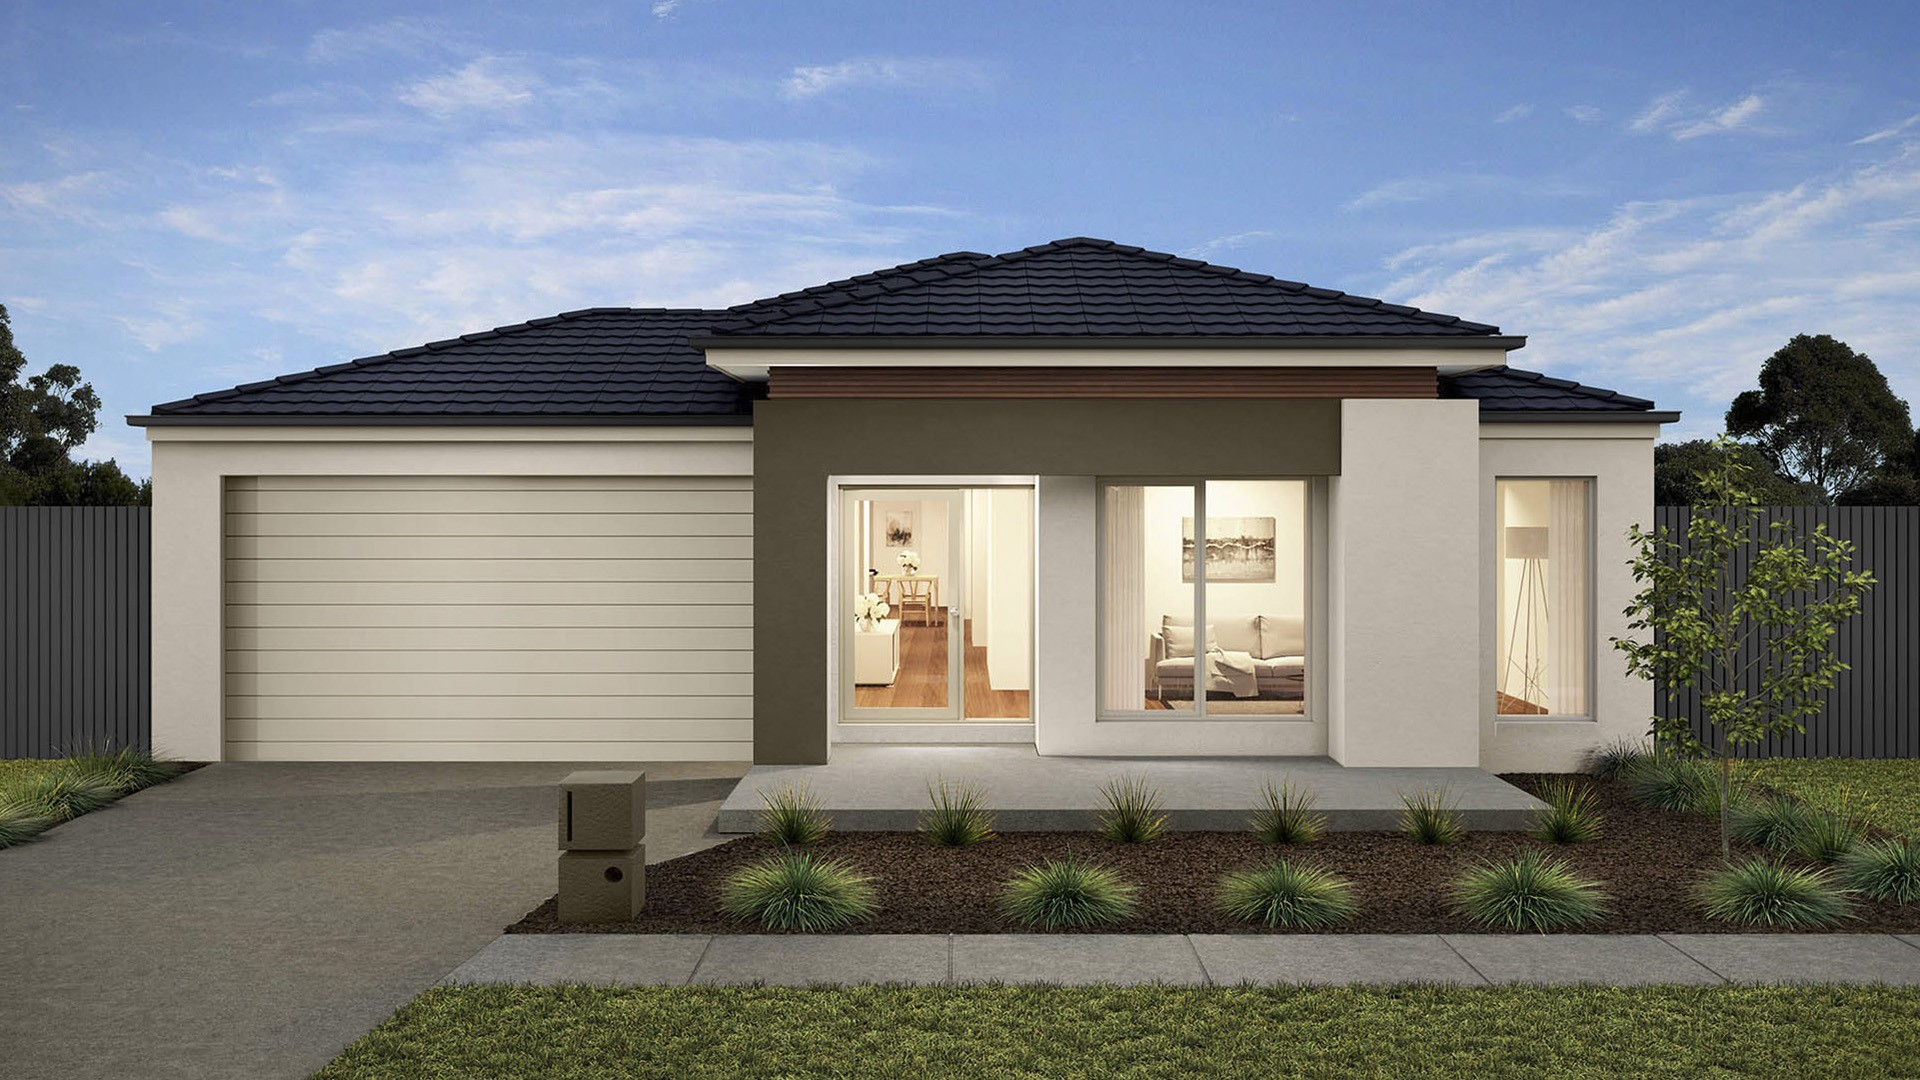 EASYLIVING HARCOURT (HEBEL) MANCHESTER 14 Exterior Image 1